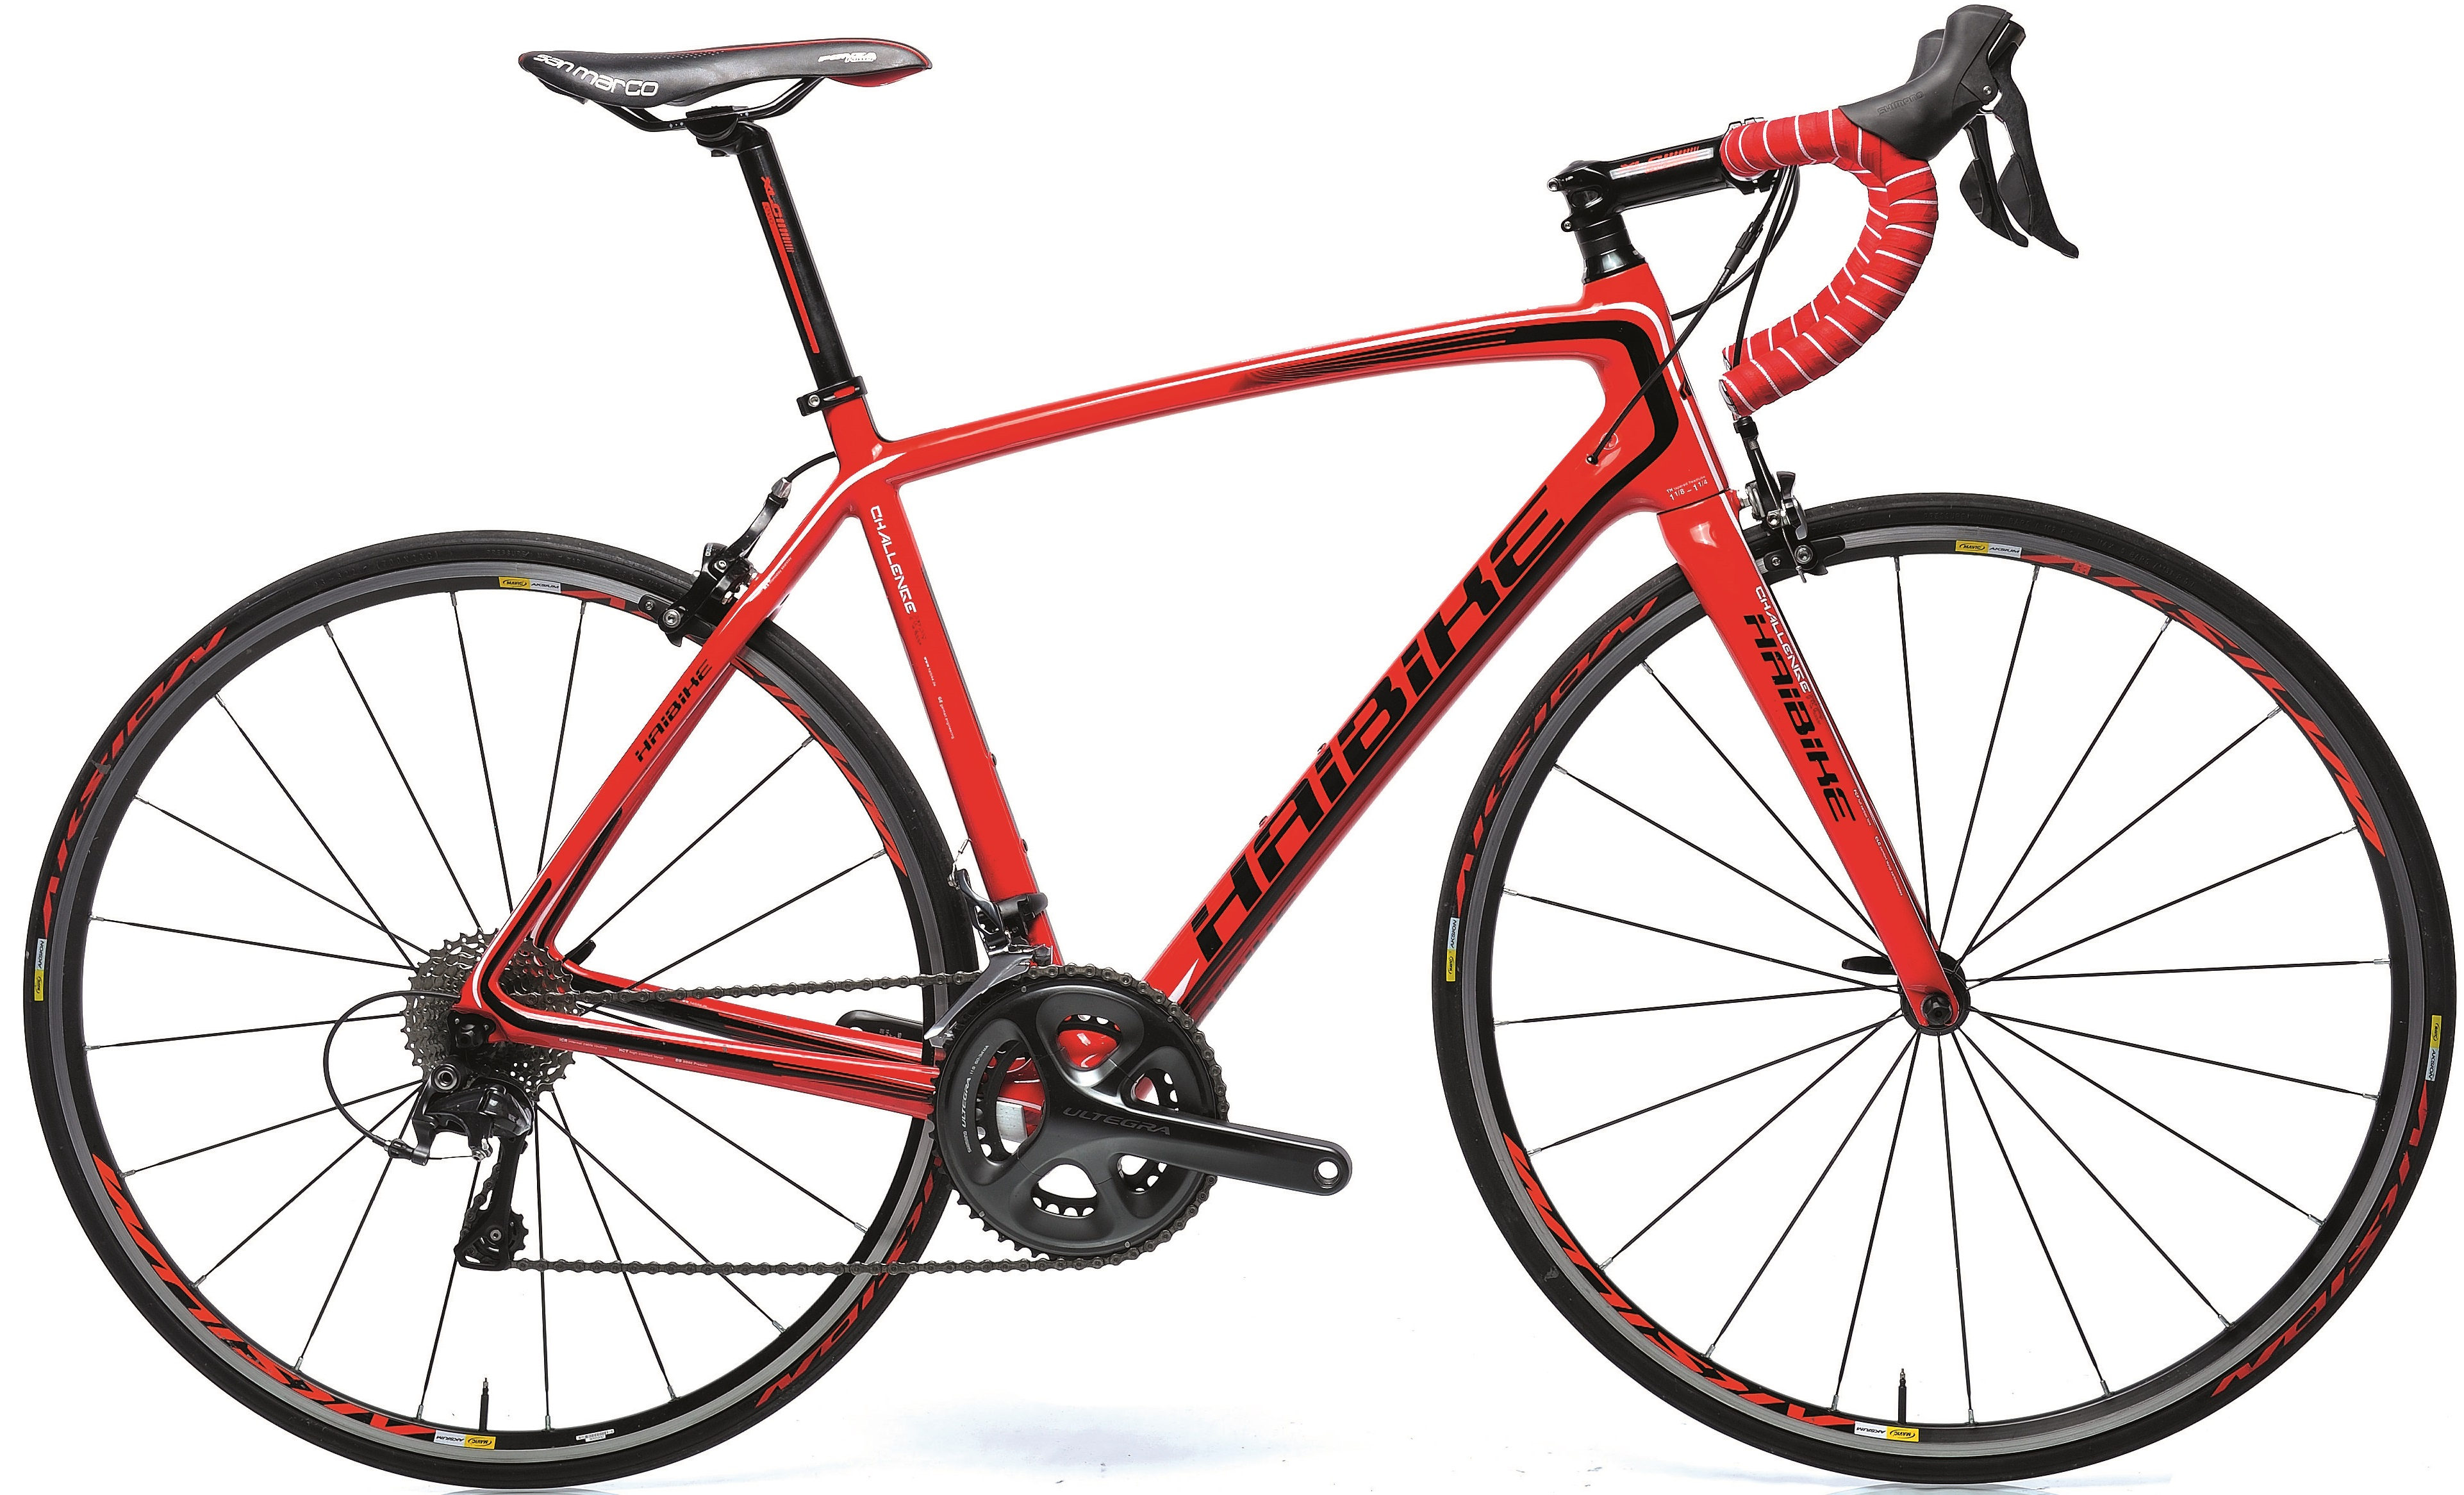 2015 Haibike Challenge RC red ultegraneuroticarnutz2015 Rose Xeon CRS ultegra black red